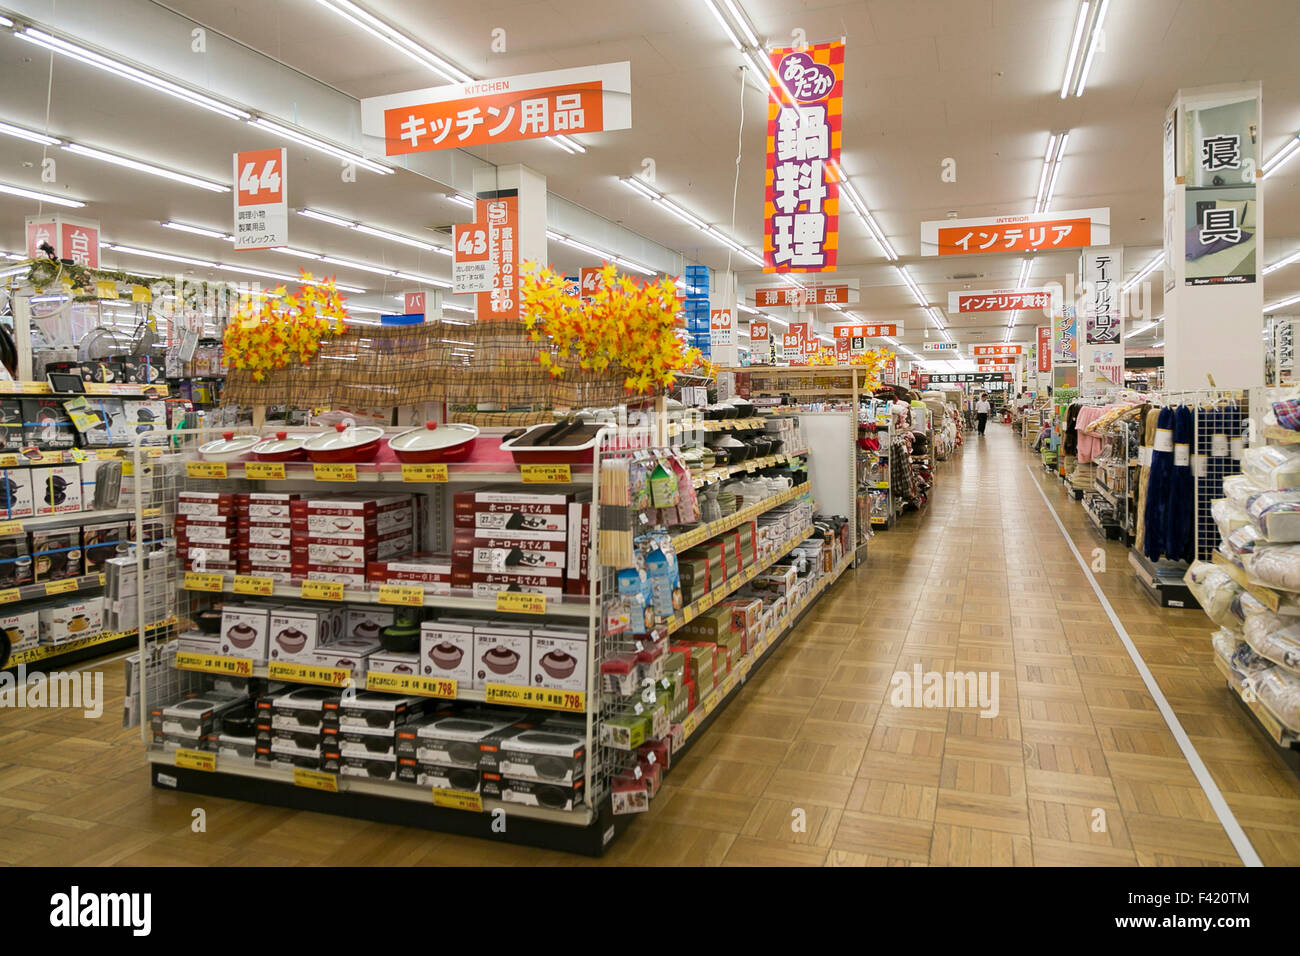 Various products on sale at Super Viva Home store in Toyosu on October 14,  2015, Tokyo, Japan. Super Viva Home is a large Japanese hardware store  chain ...